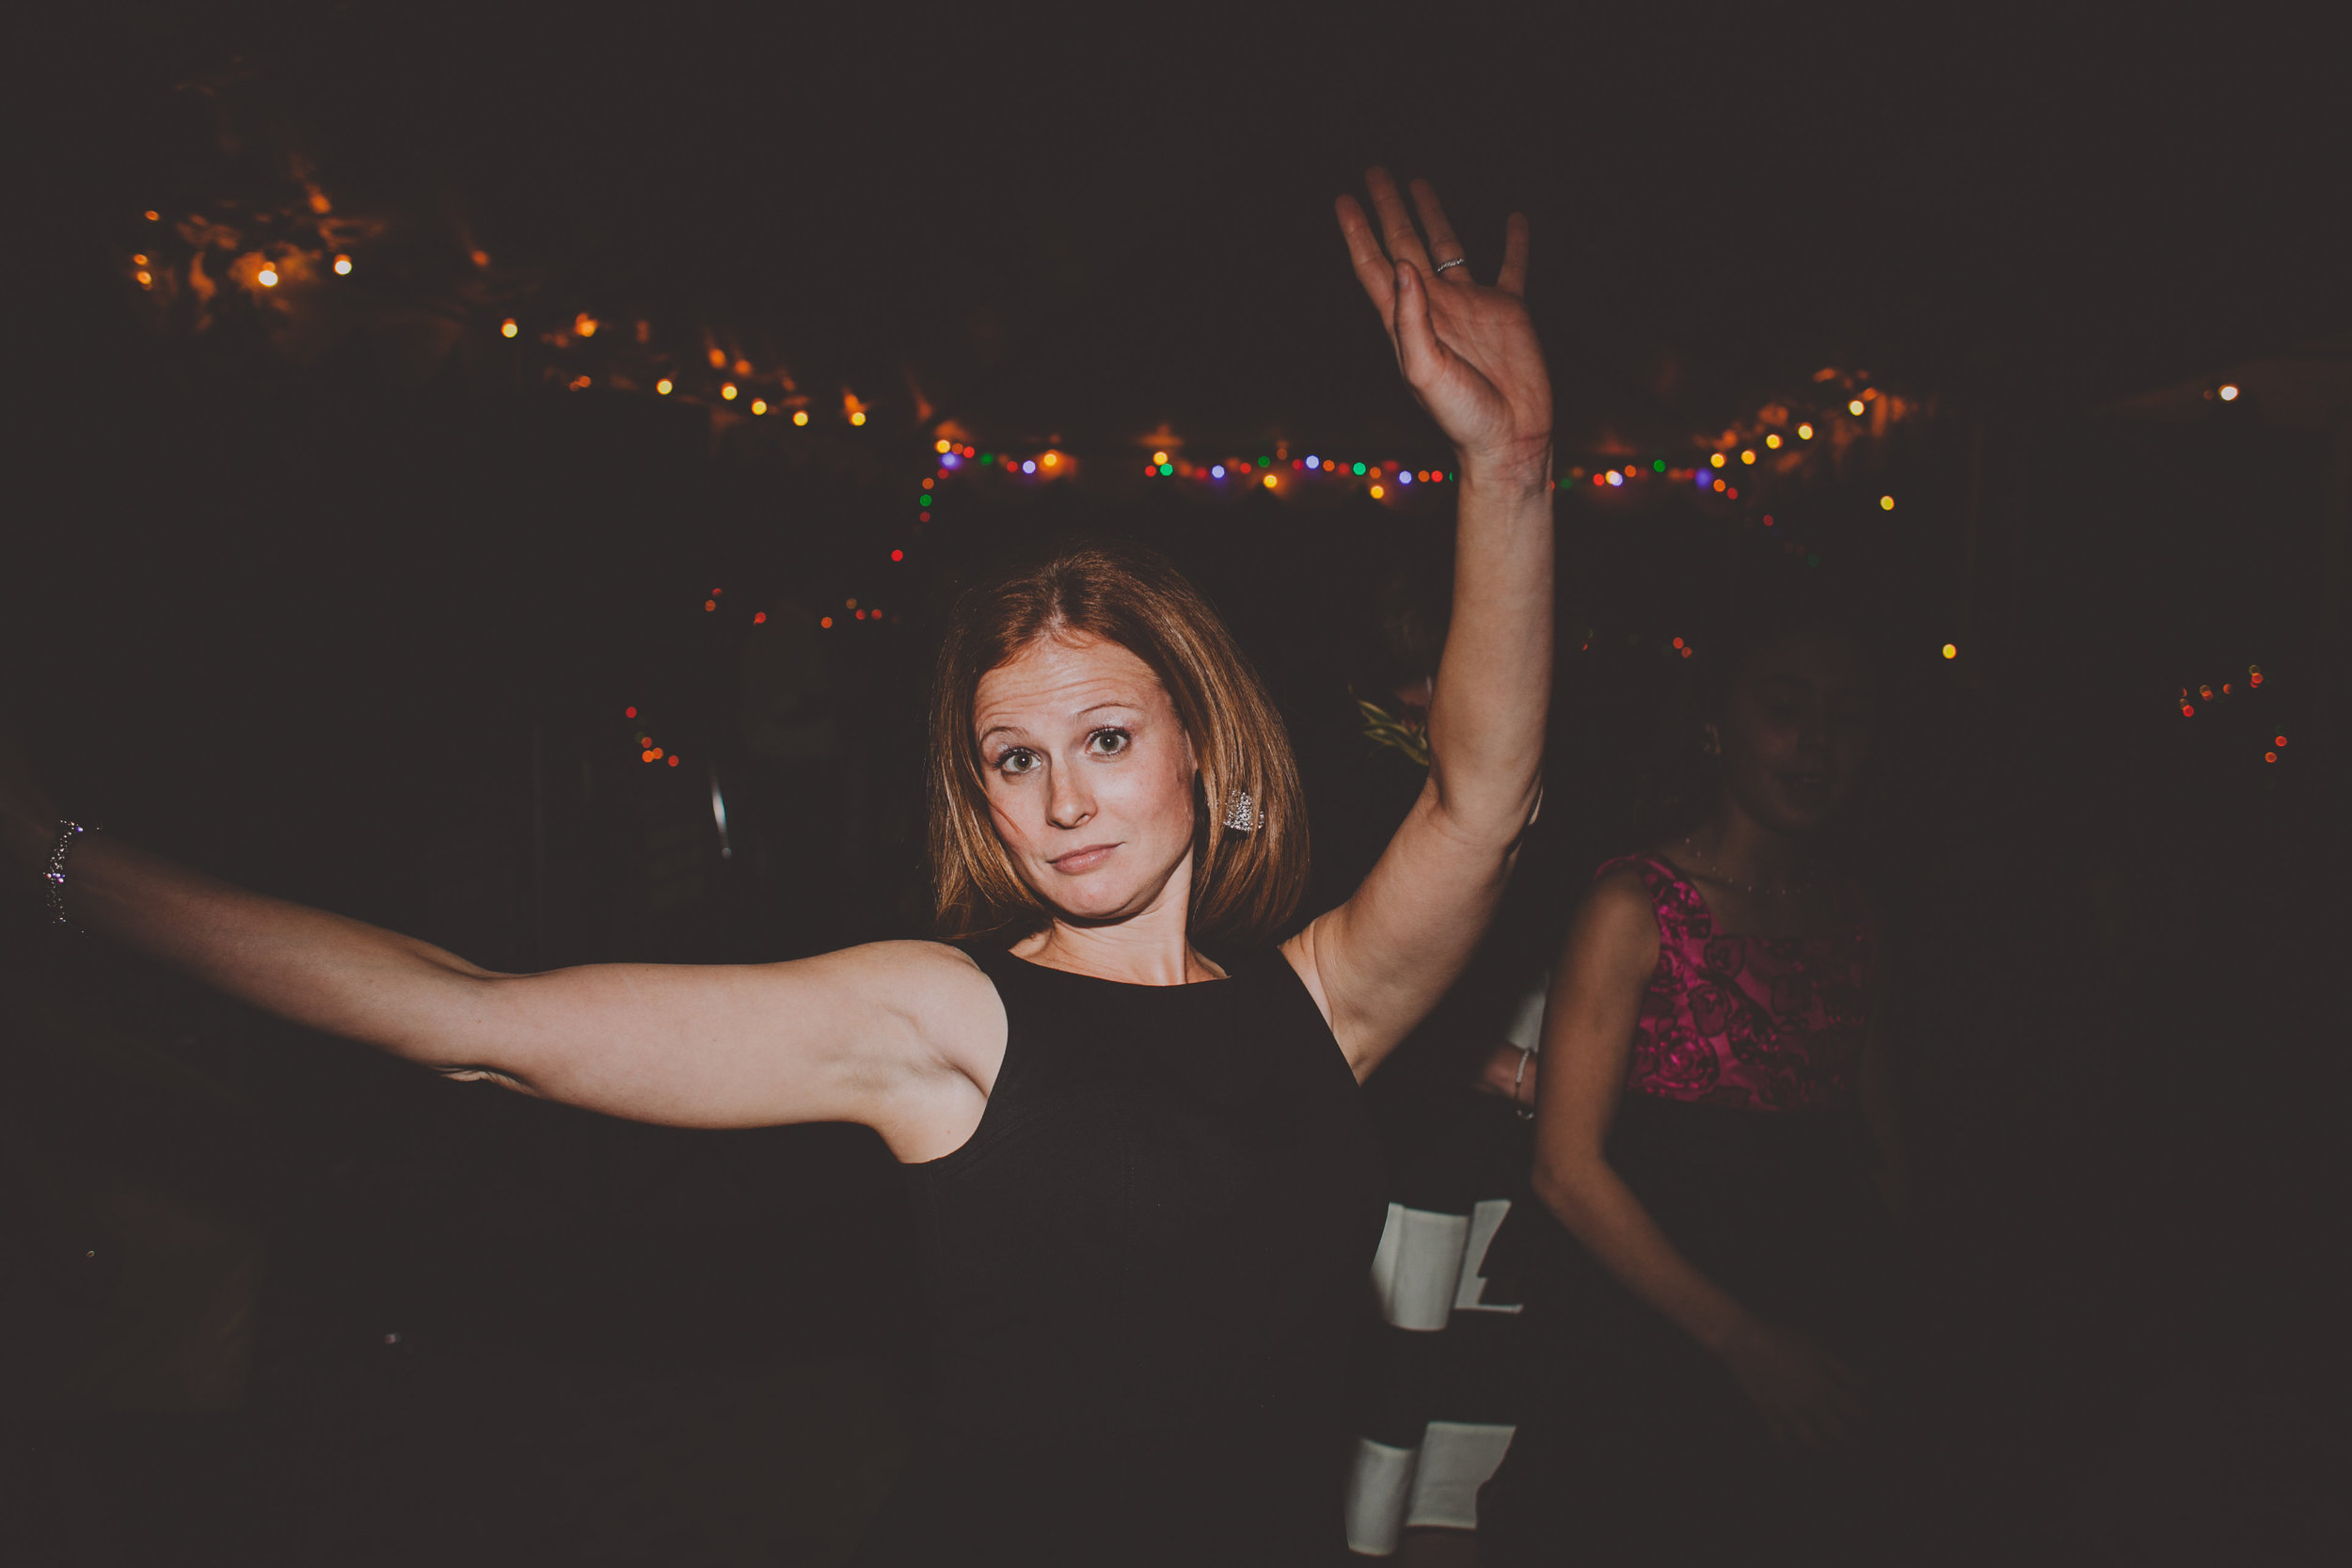 Robertas_Bushwick_Wedding_Tiki_Photography362.JPG